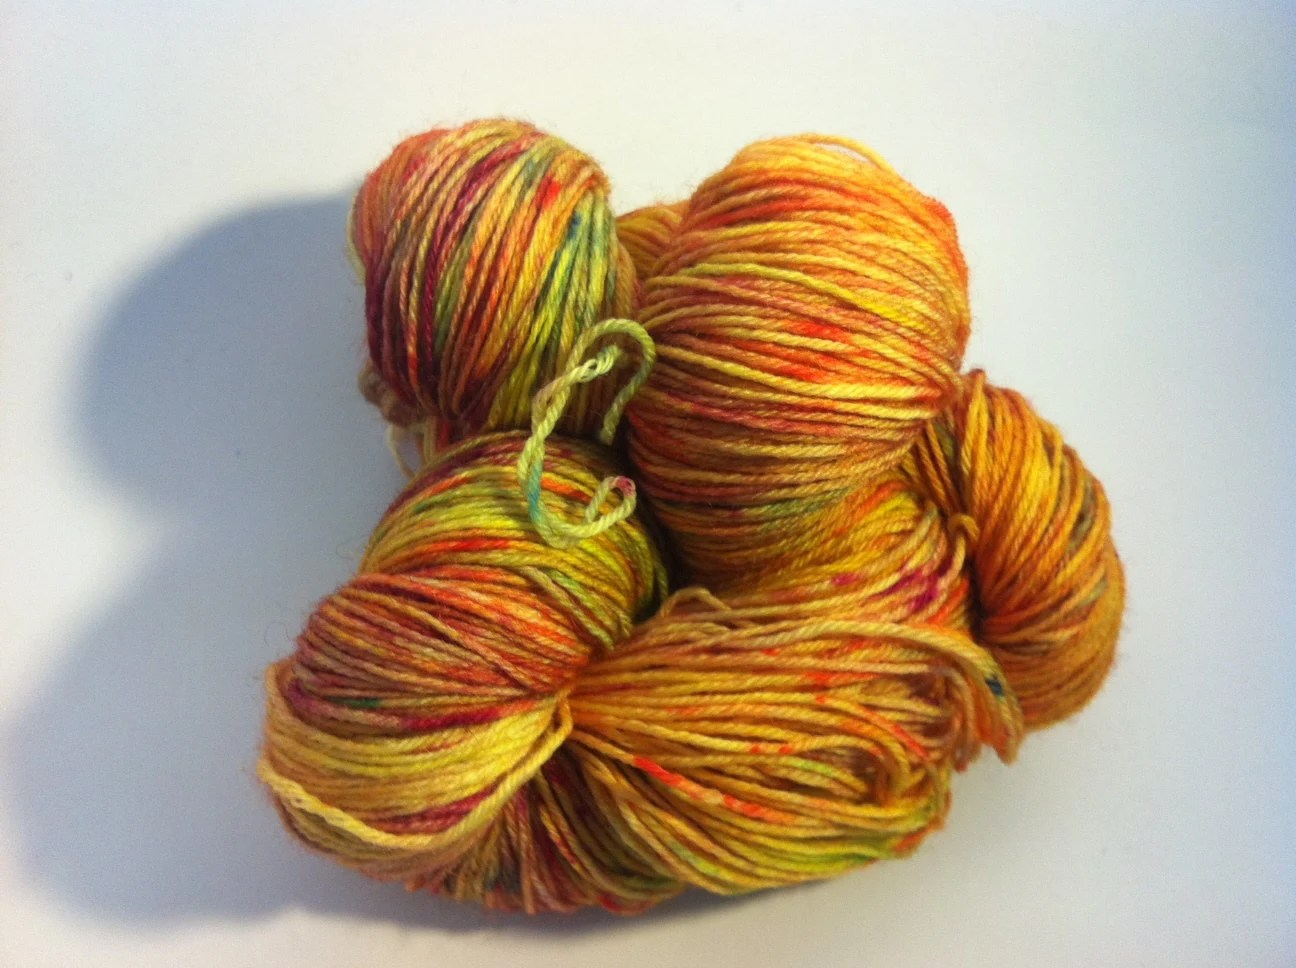 Yellow Wildflower -  hand dyed variegated British wool sock yarn for knitting, lace